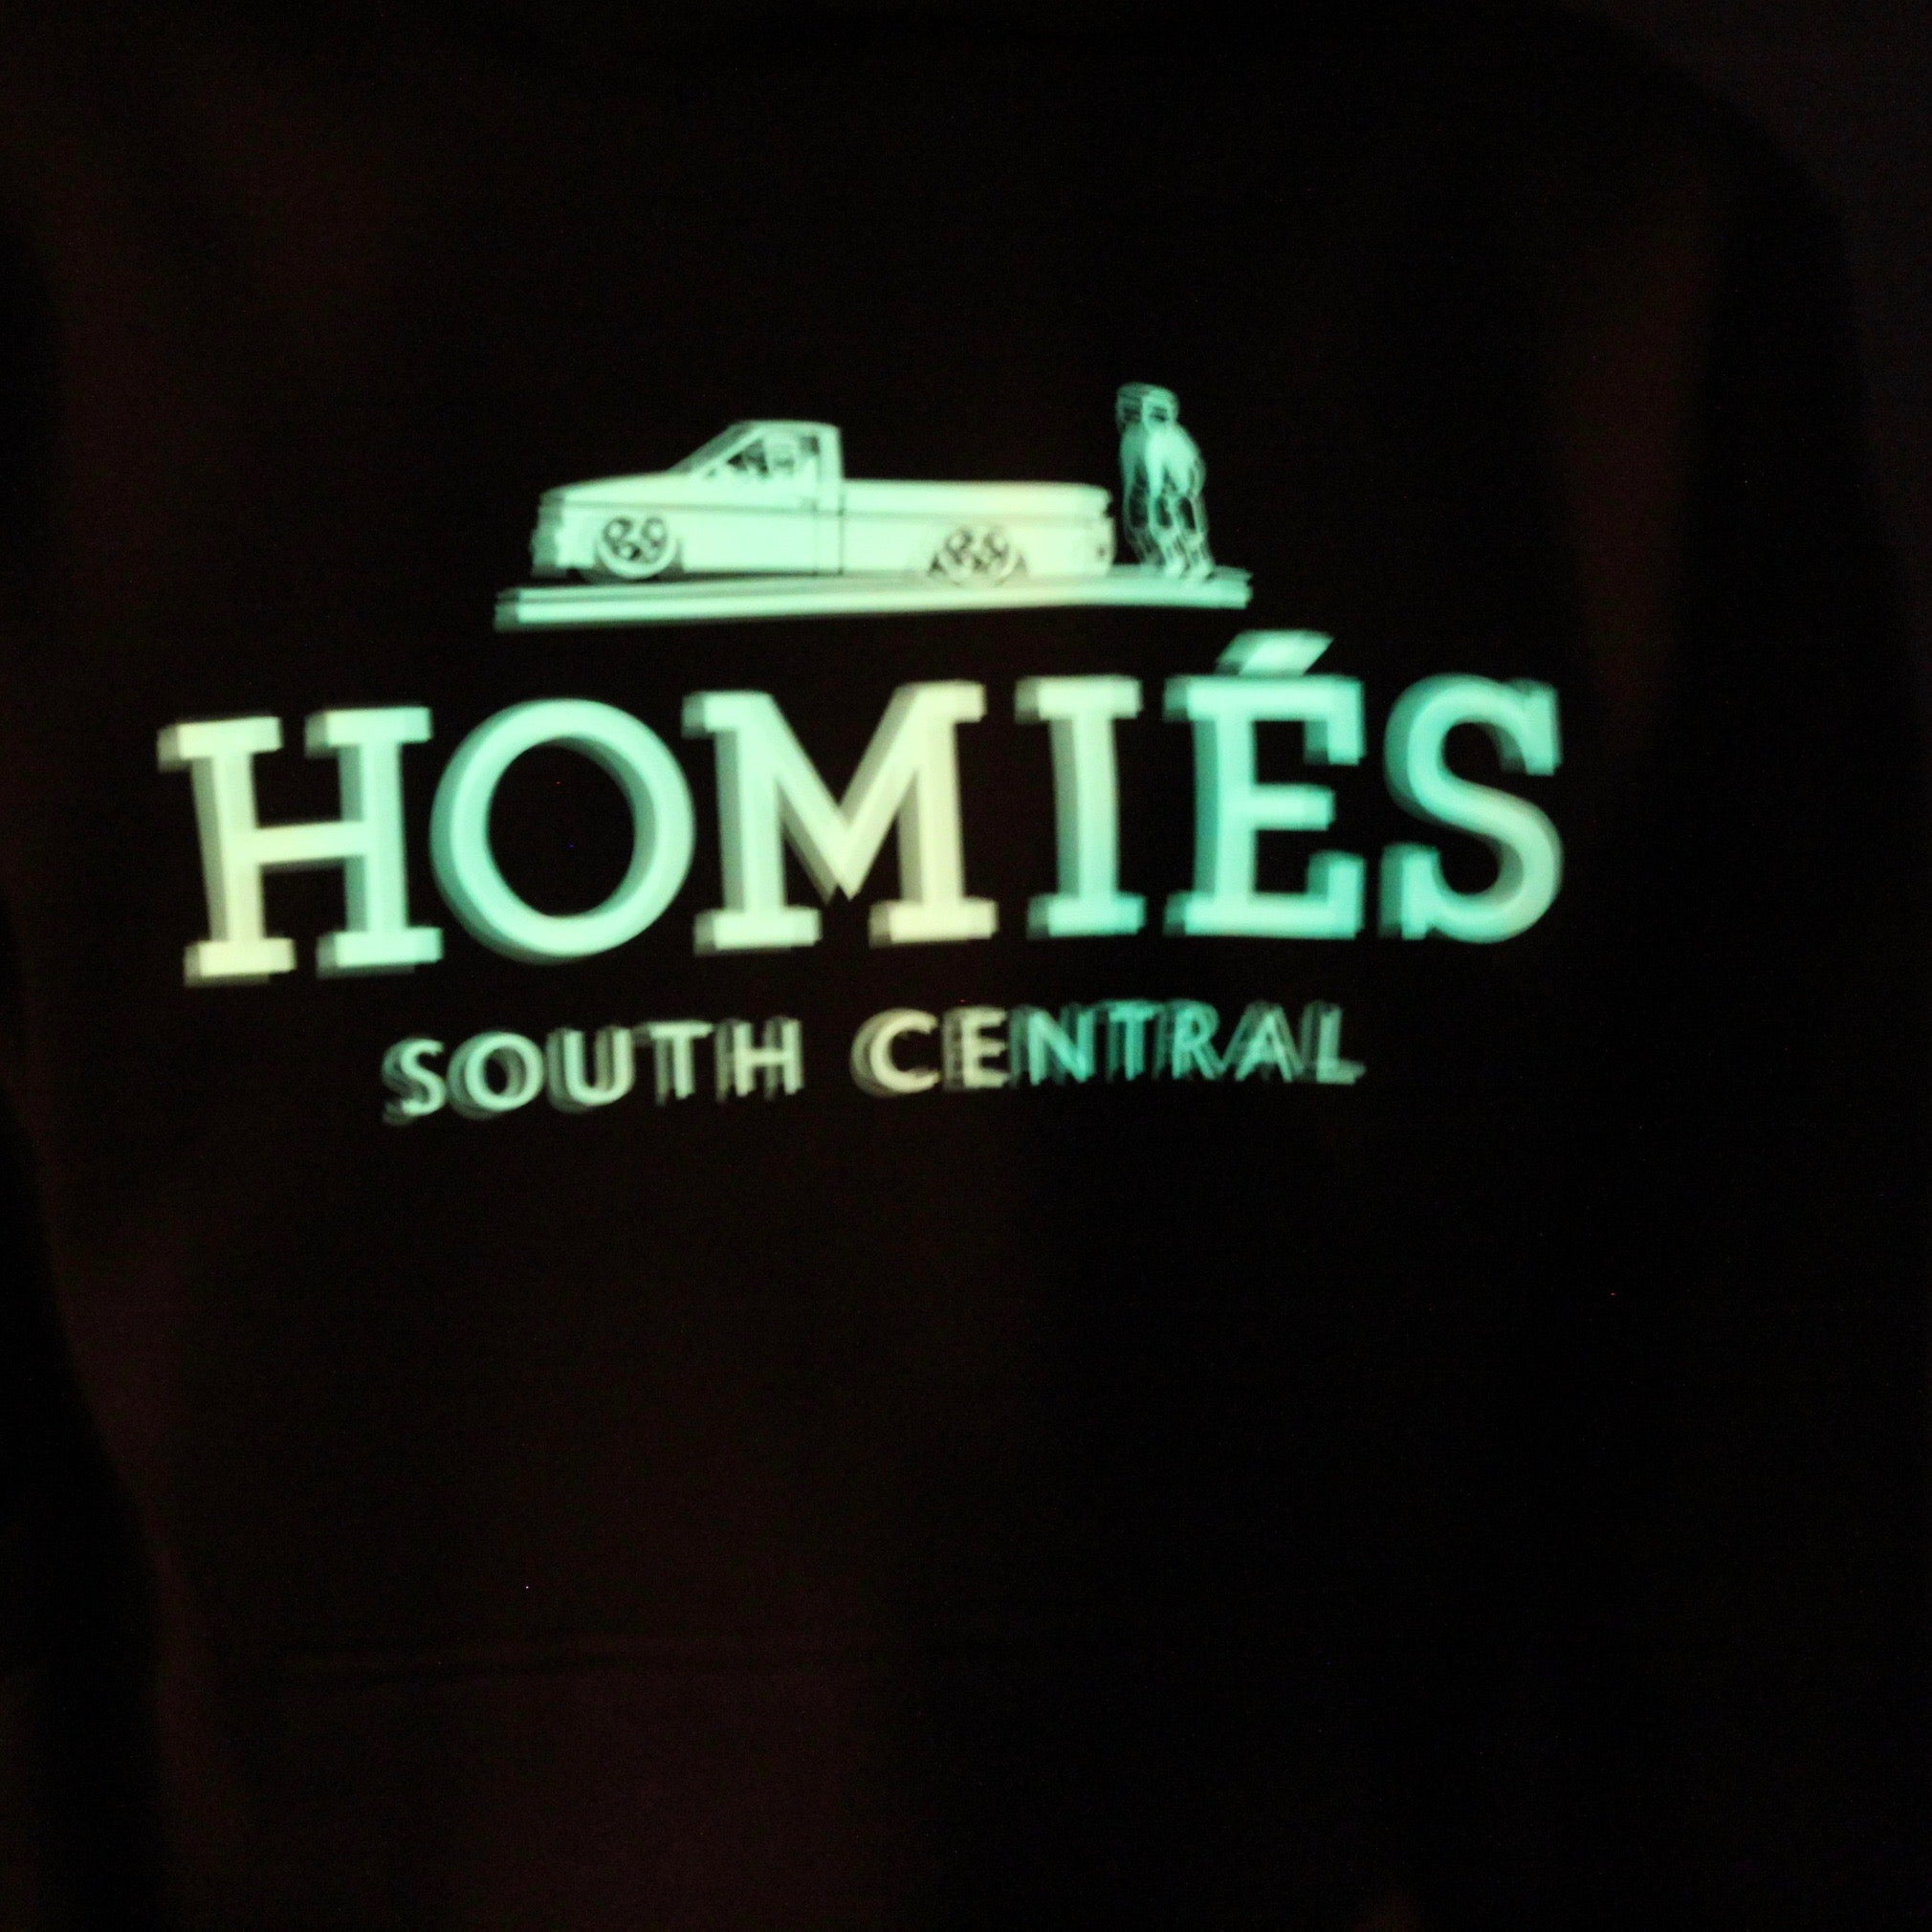 HOMIÉS GLOW-IN-THE-DARK TEE